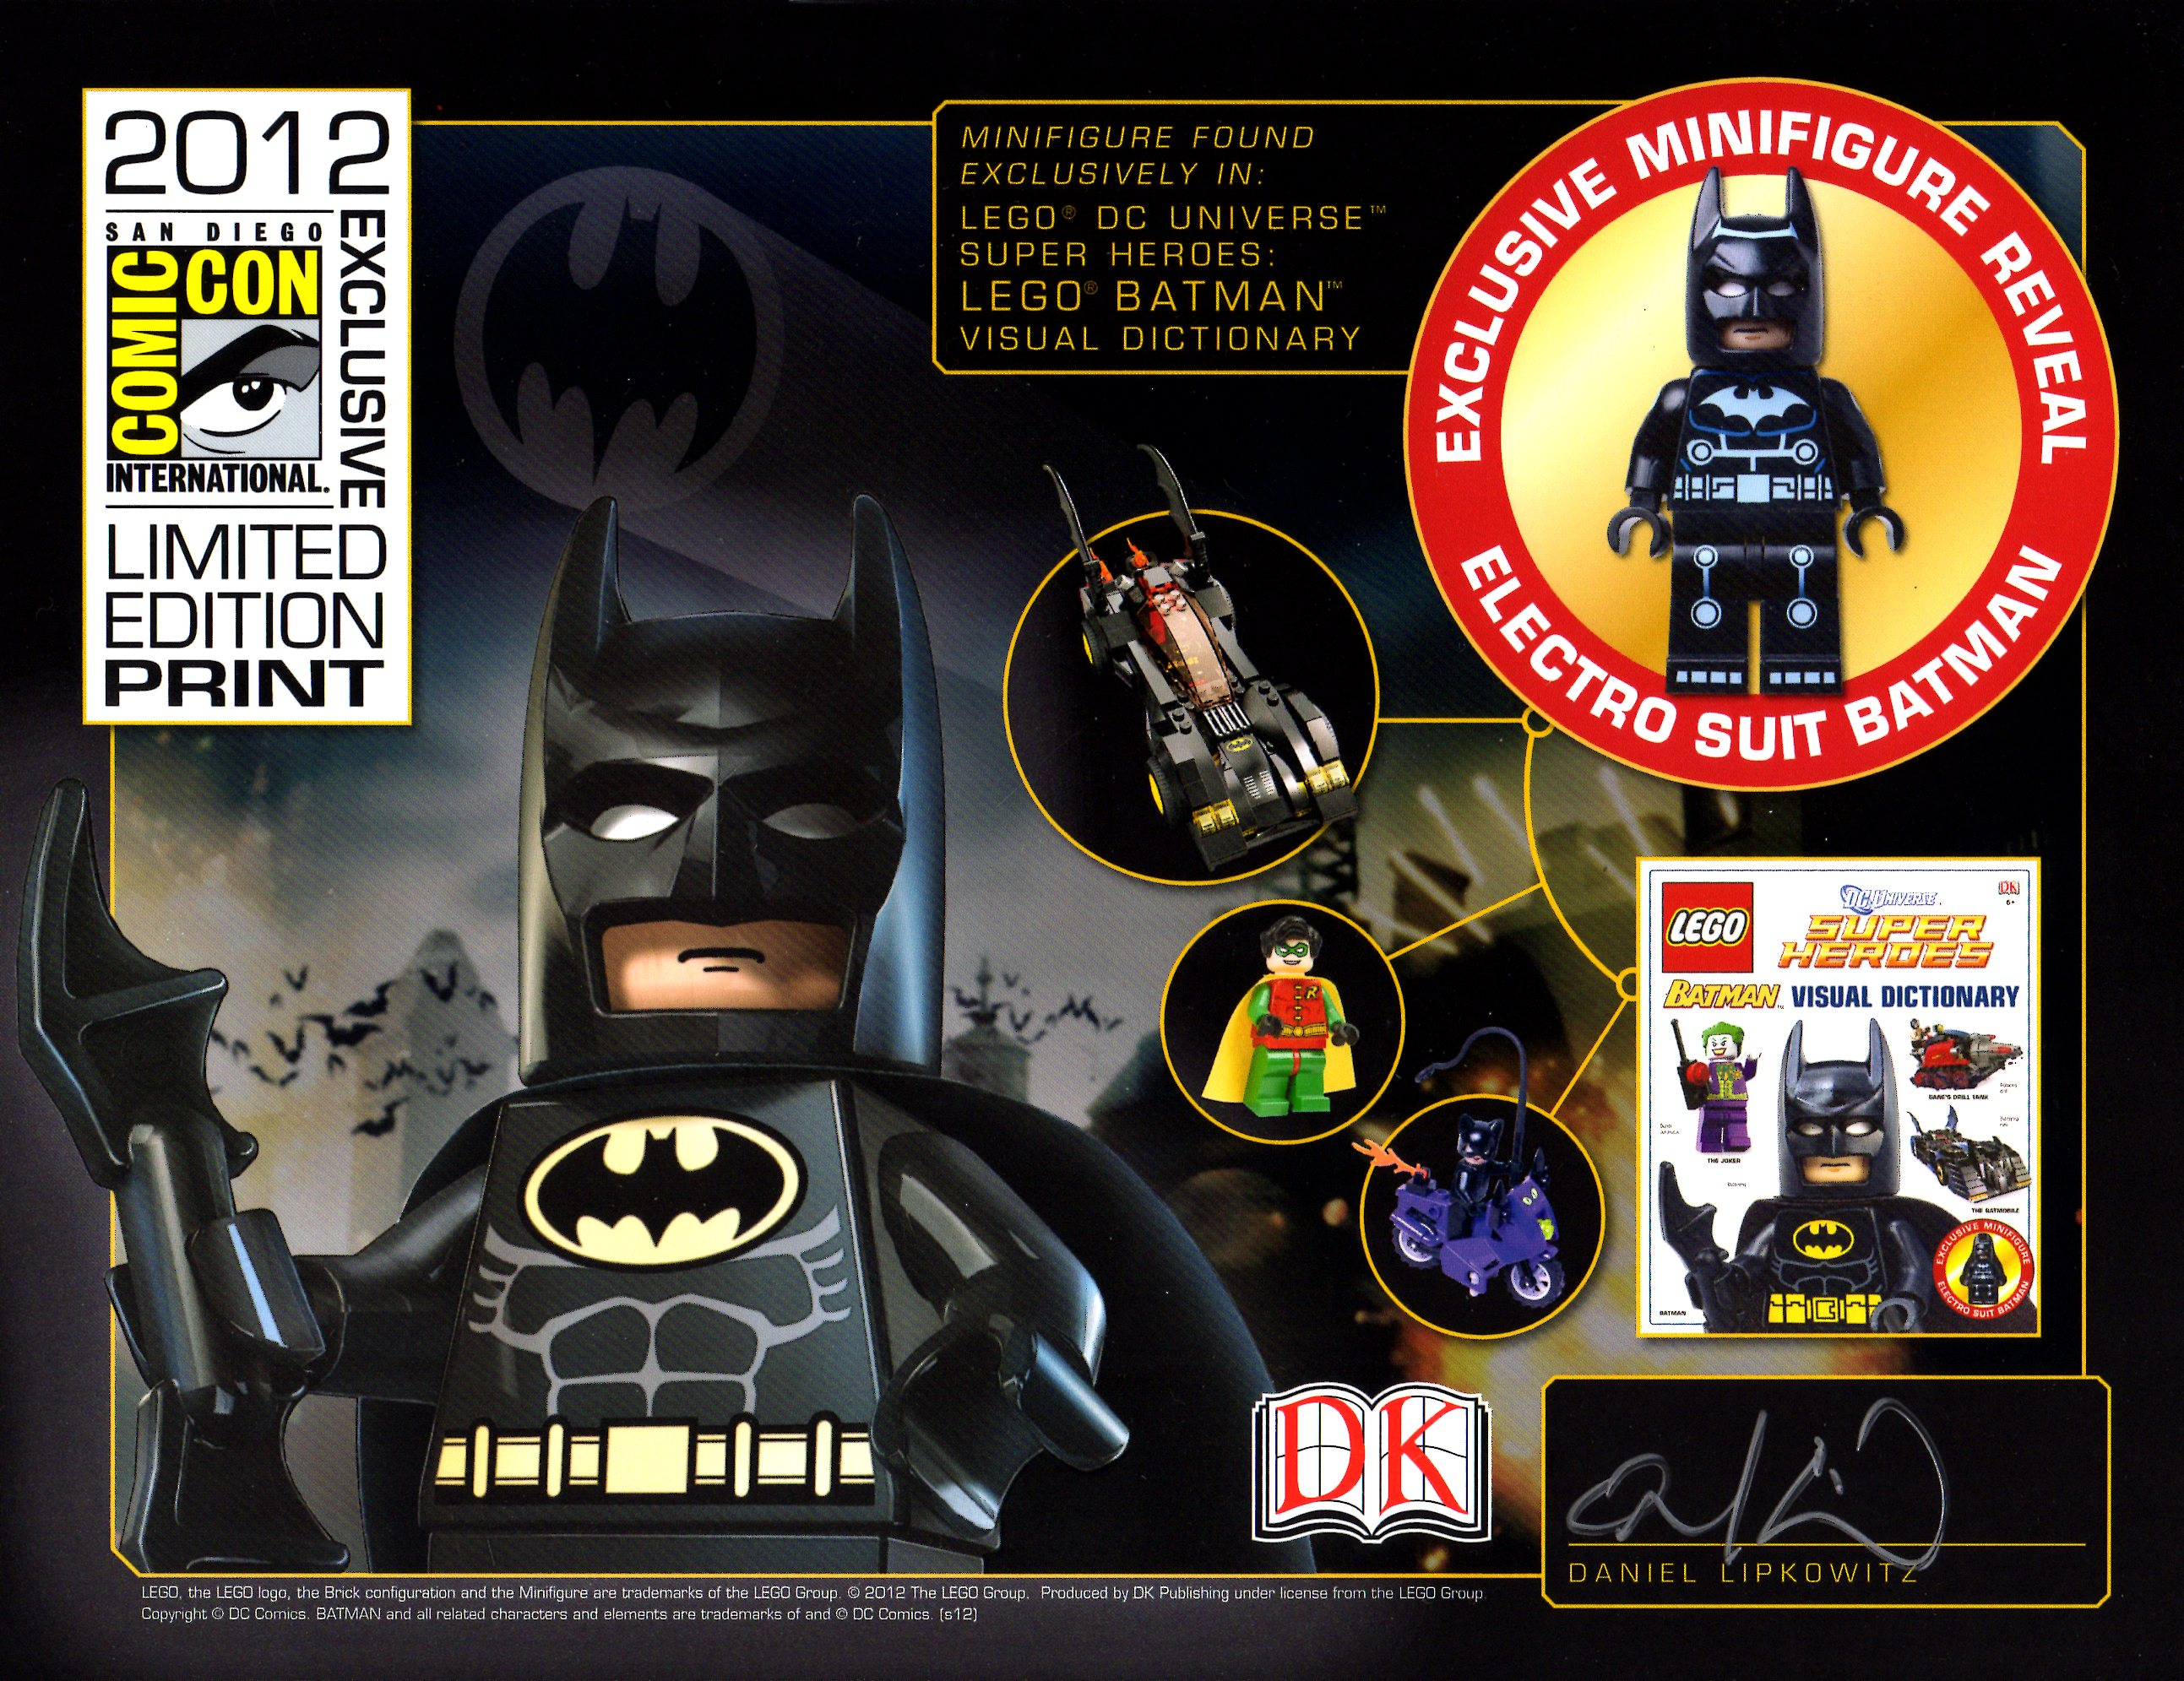 Image lego batman visual dictionary exclusive print sdcc 2012